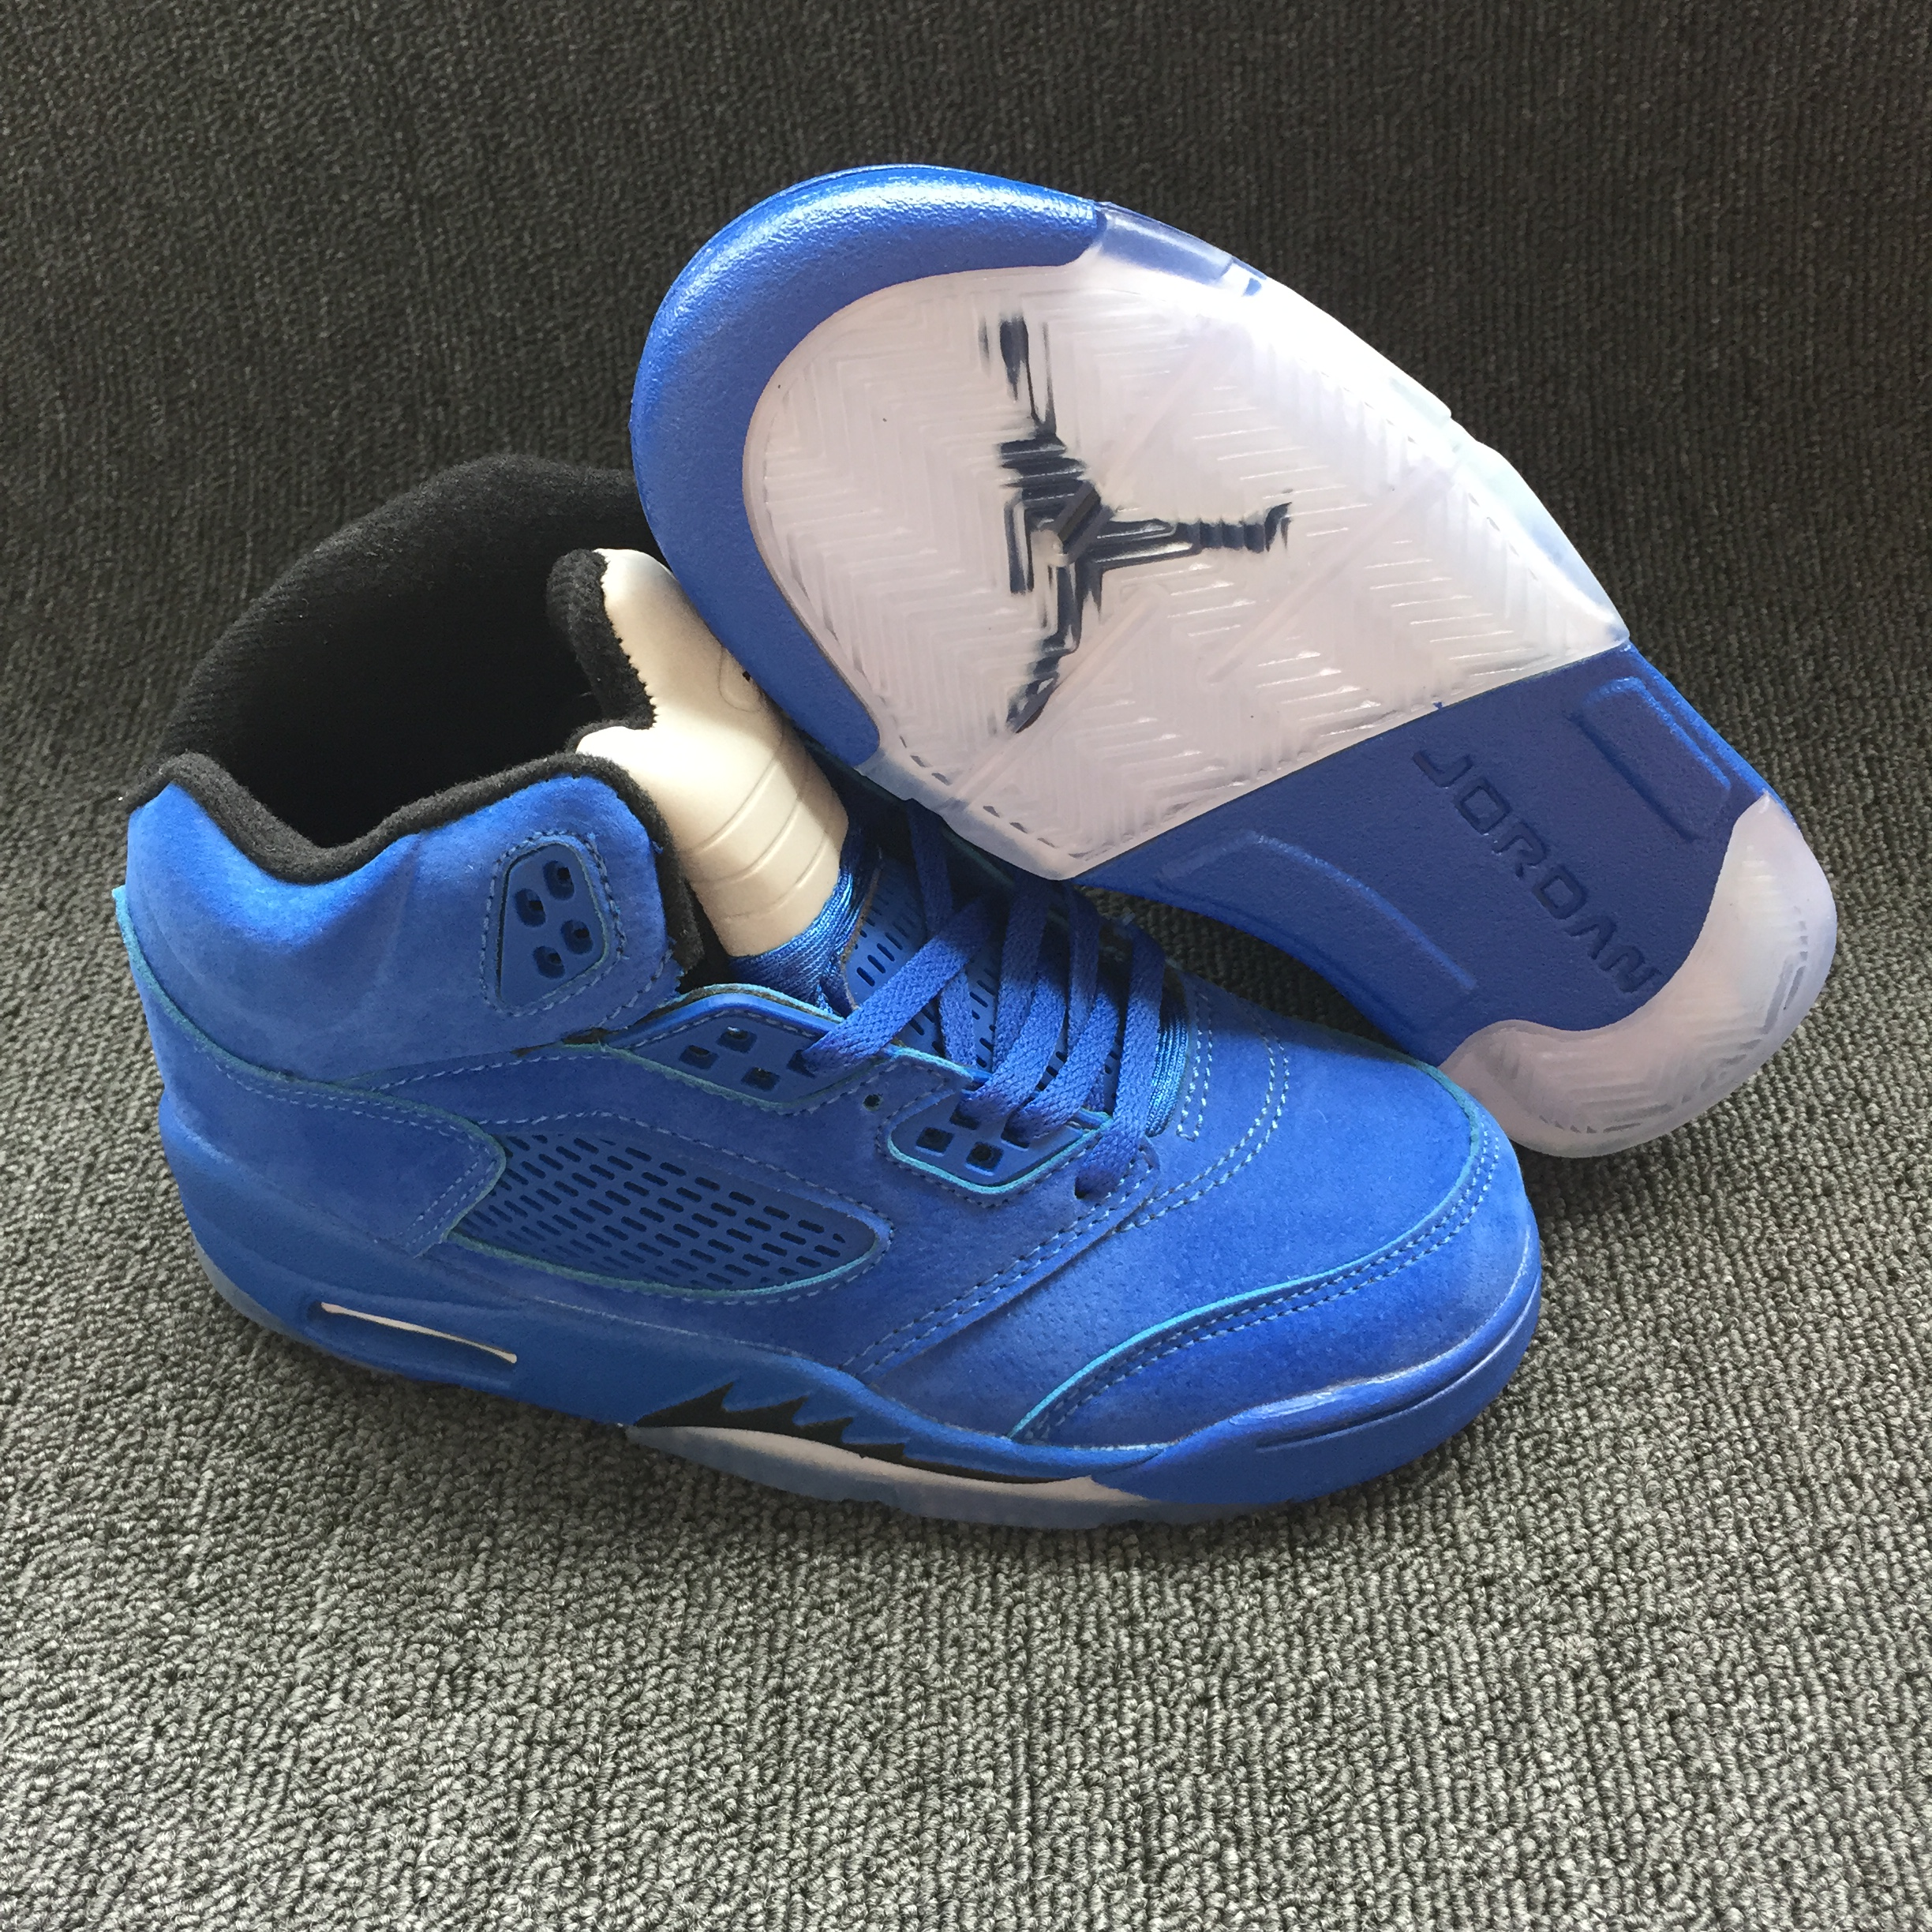 Air Jordan 5 Retro Sea Blue White Shoes For Kids